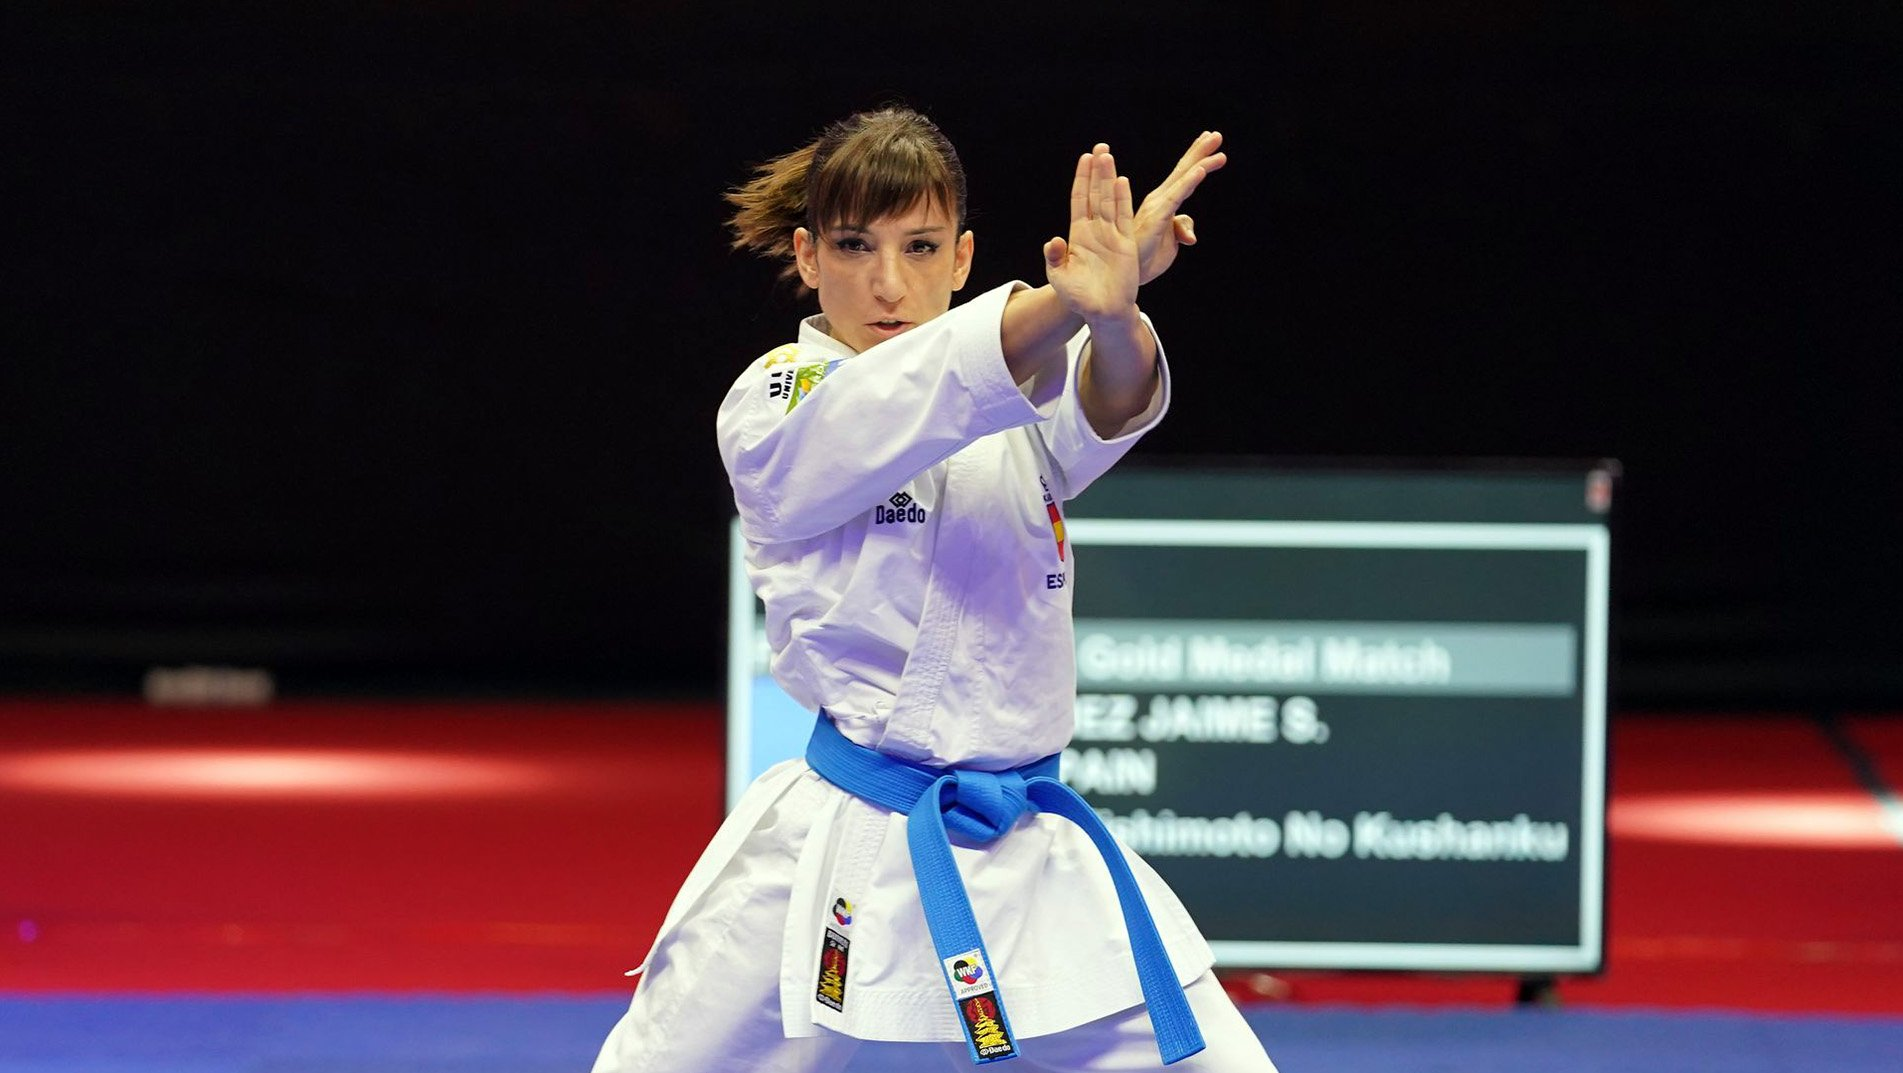 Who is leading Karate 1-Premier League standings?